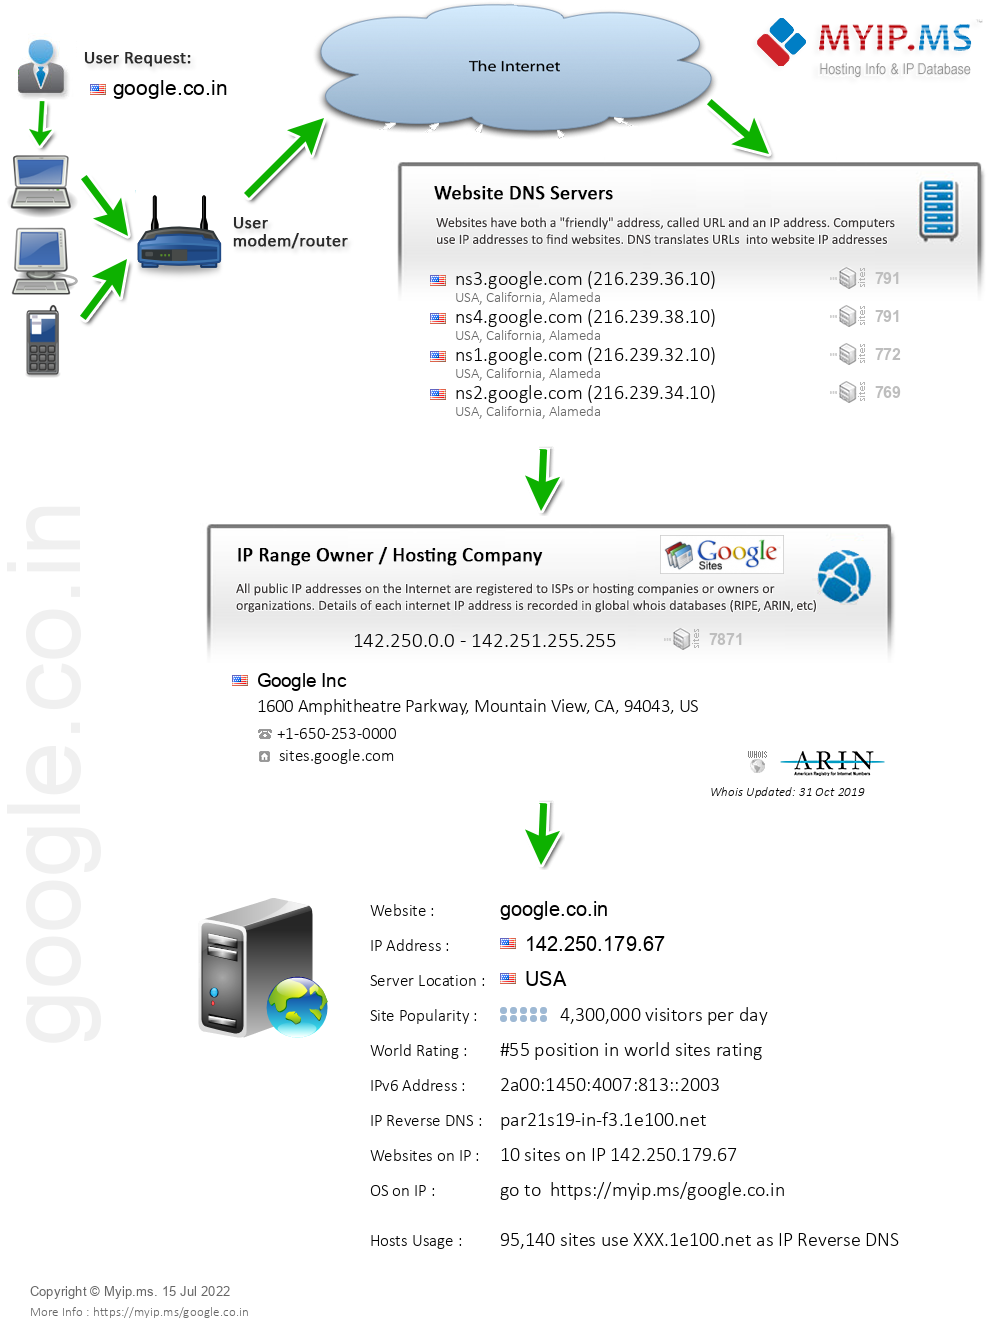 Google.co.in - Website Hosting Visual IP Diagram